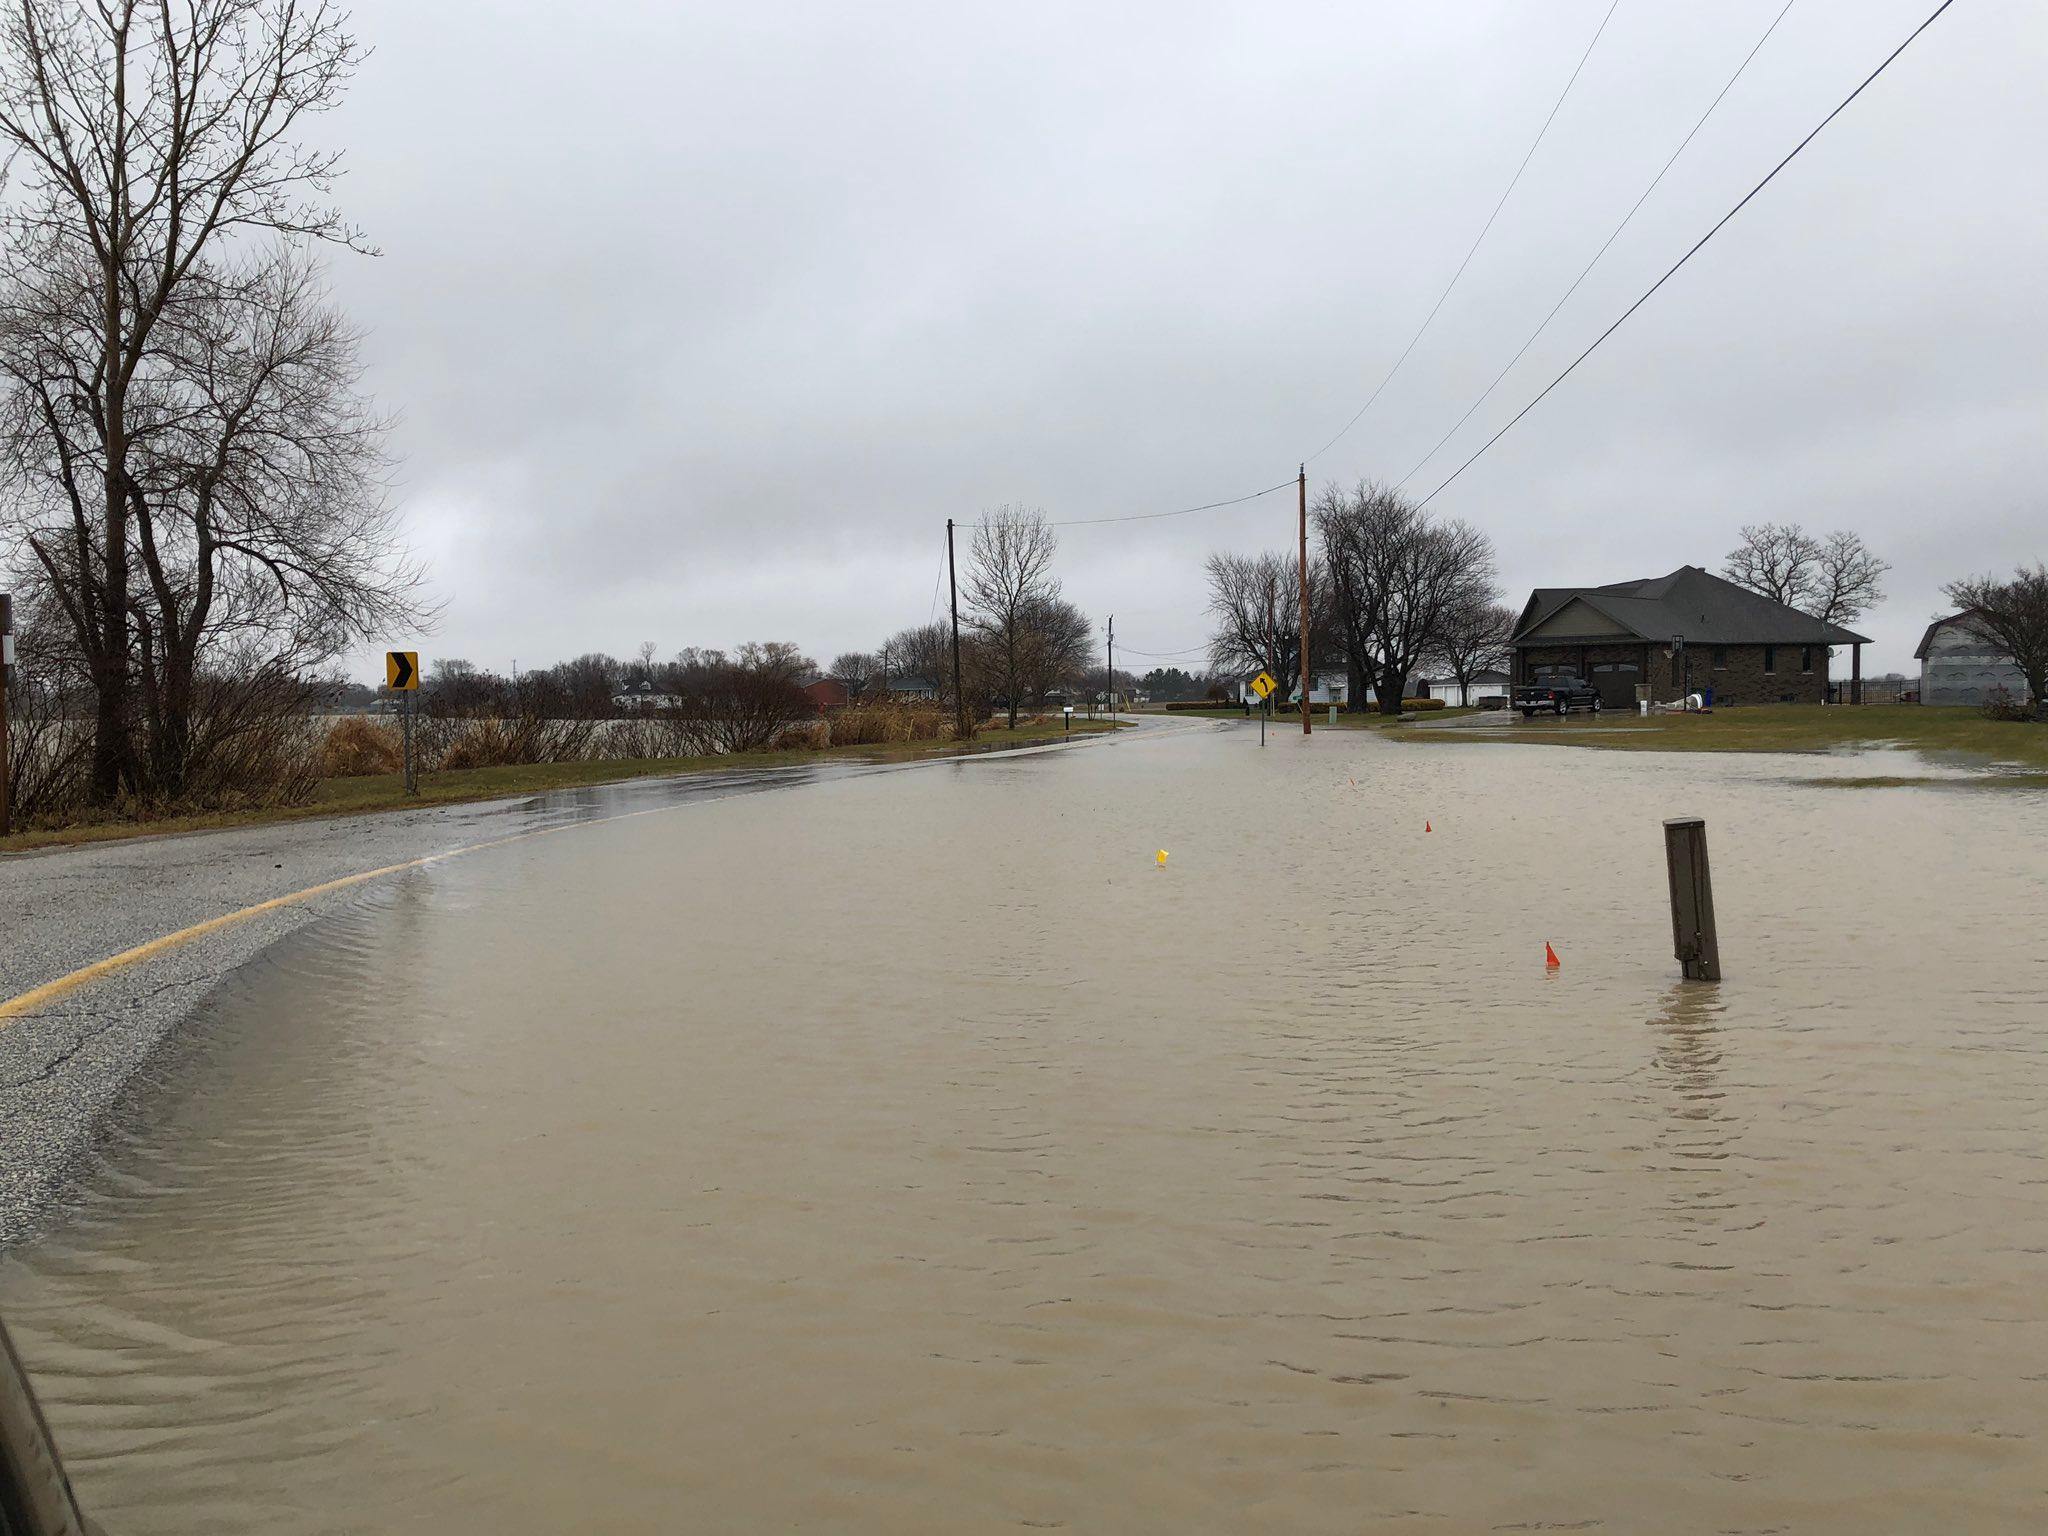 am800-news-amherstburg-river-canard-south-river-view-road-flooding-january-11-2020